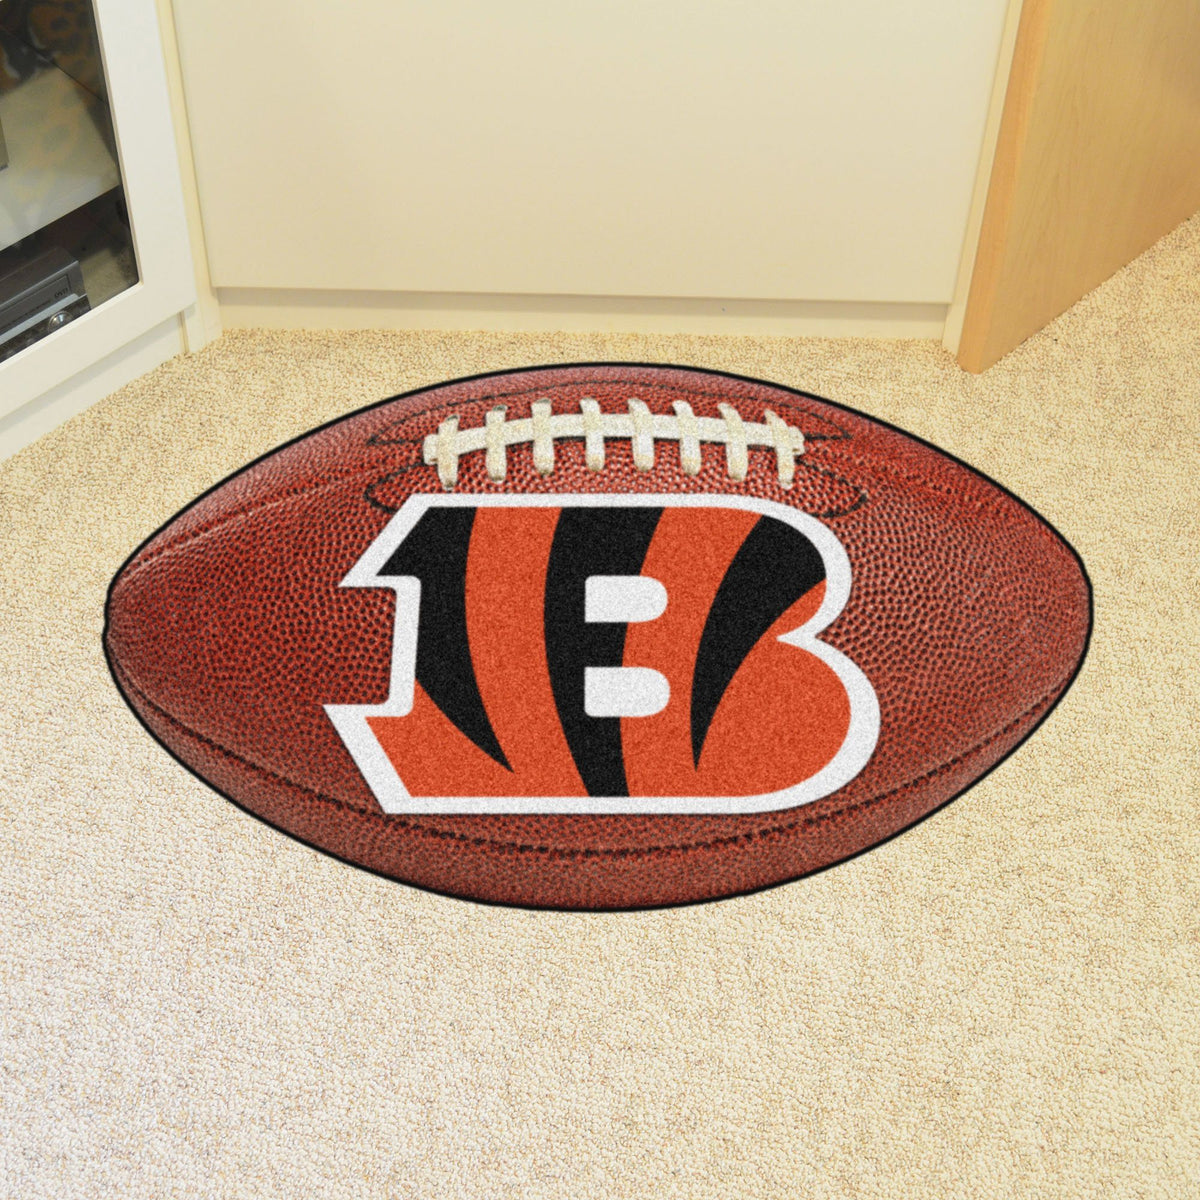 NFL - Football Mat NFL Mats, Custom Shape Rugs, Football Mat, NFL, Home Fan Mats Cincinnati Bengals